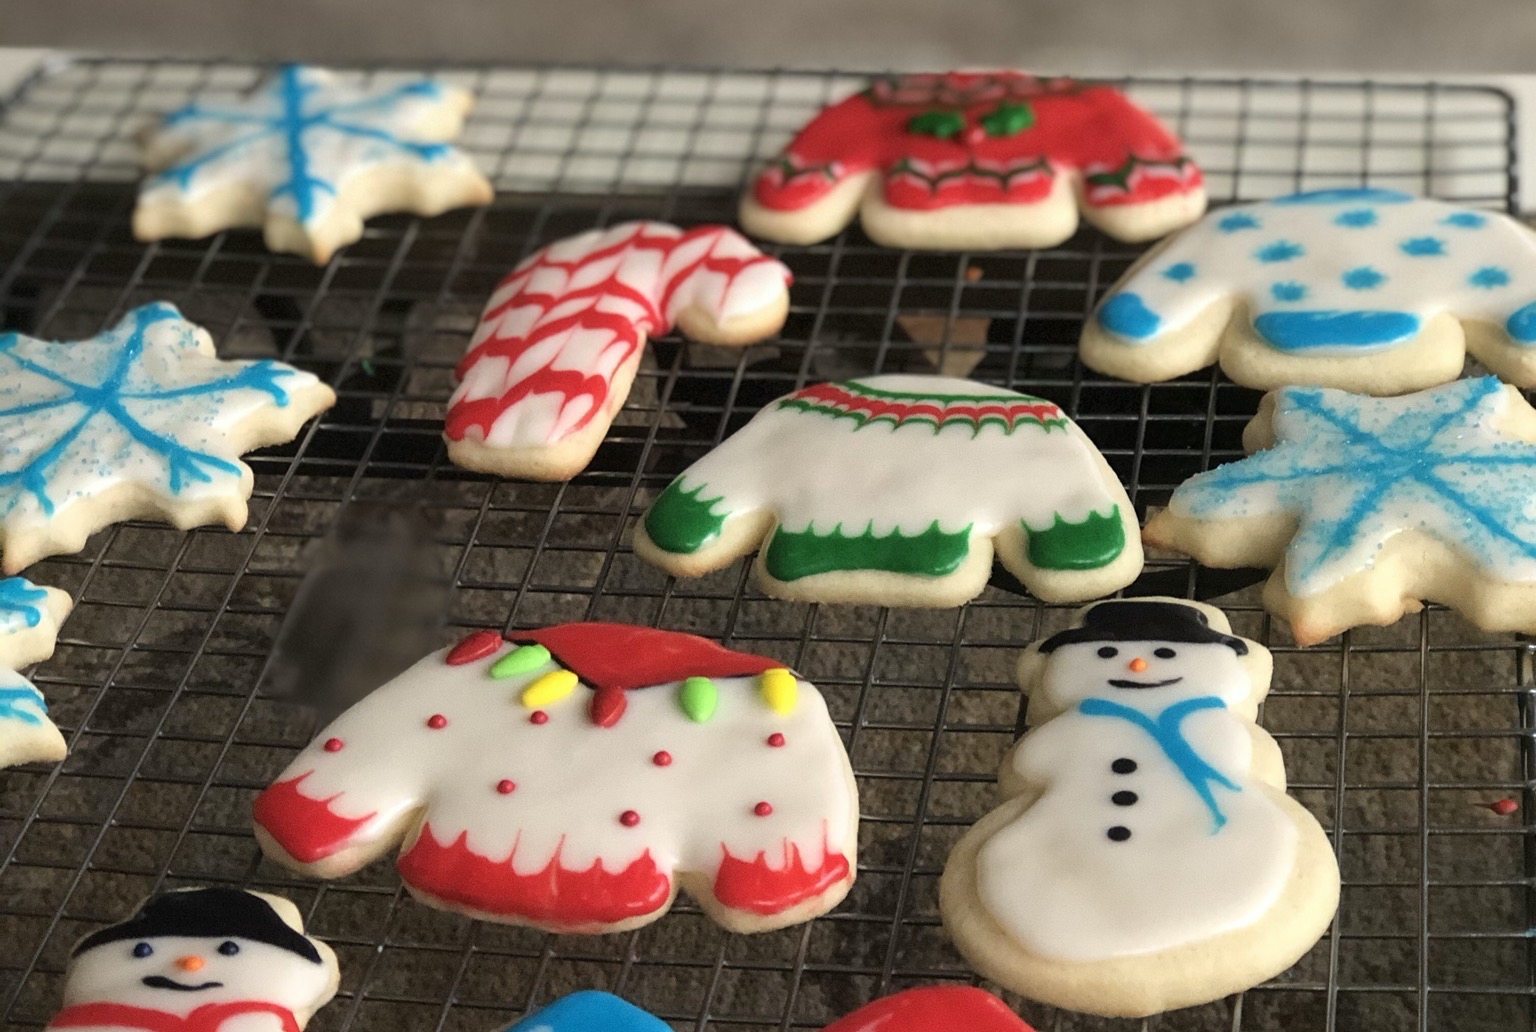 sugar cookies shaped like Christmas sweaters, snowmen, candy canes, and snowflakes